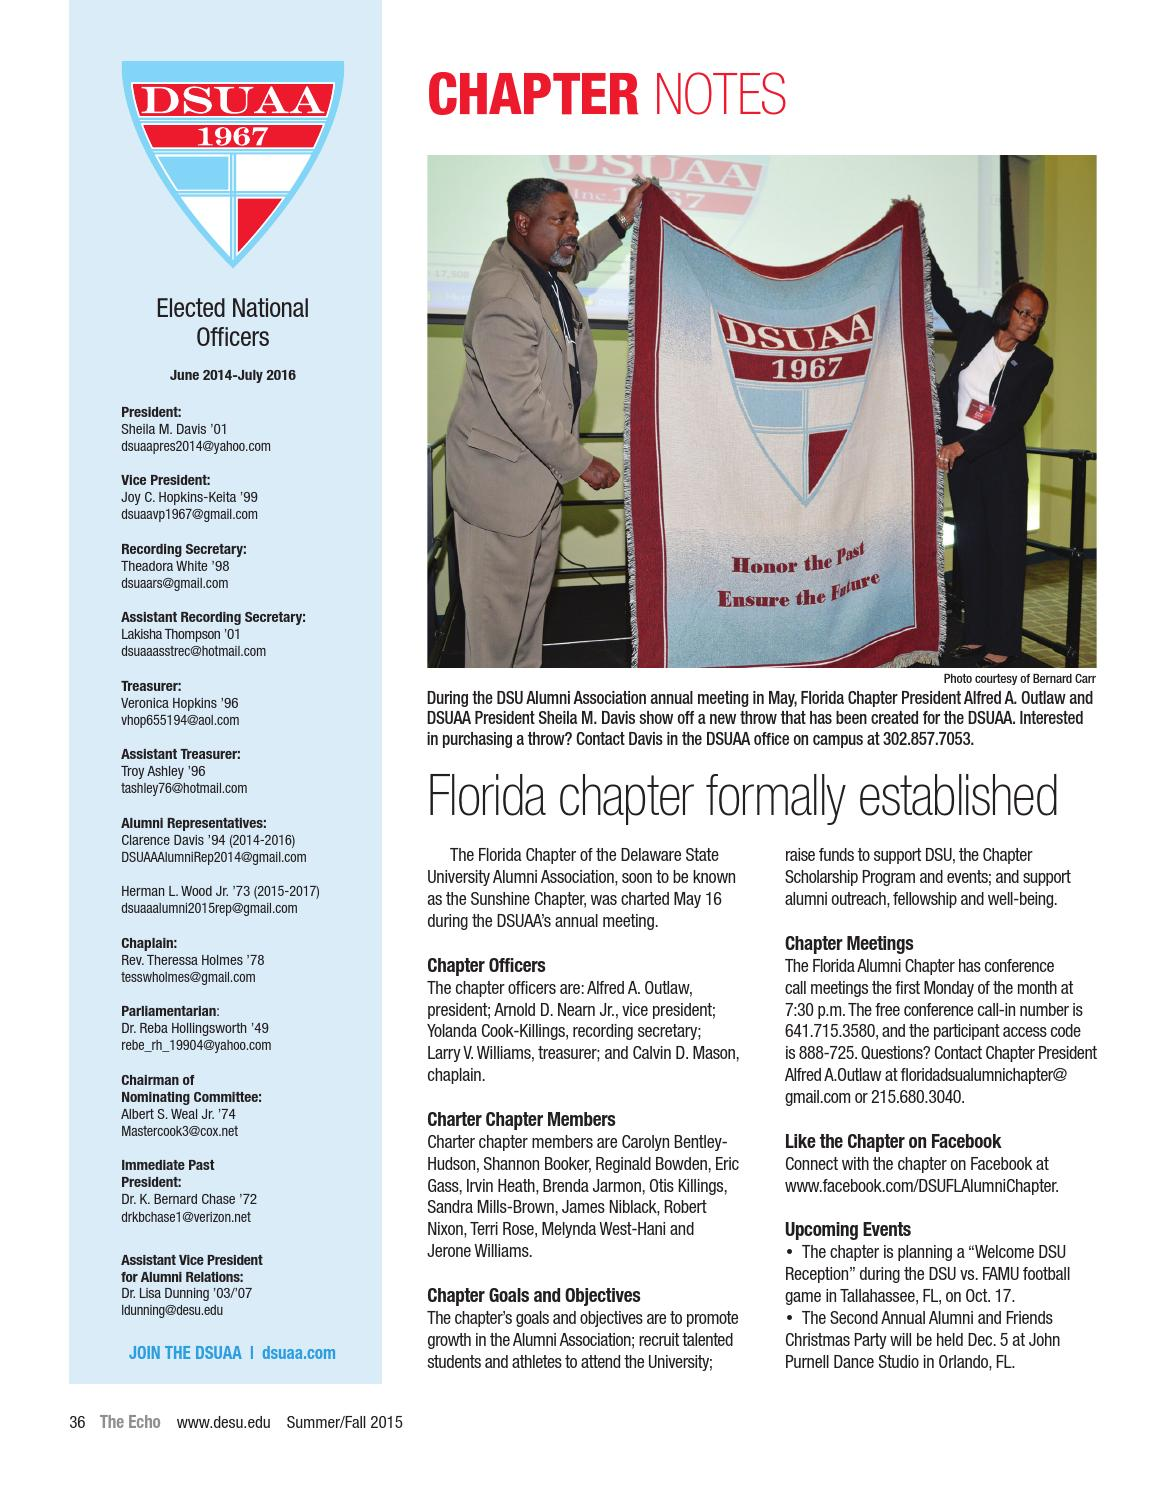 Delaware State University The Echo Summer/Fall 2015 by